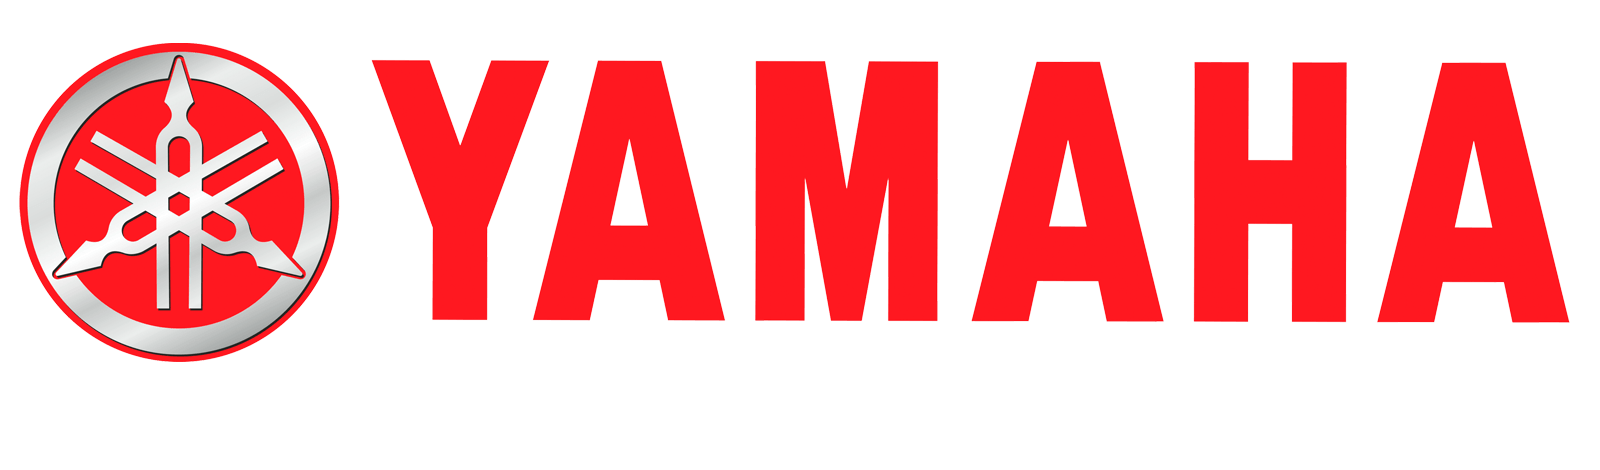 Yamaha-logo-authorized-2